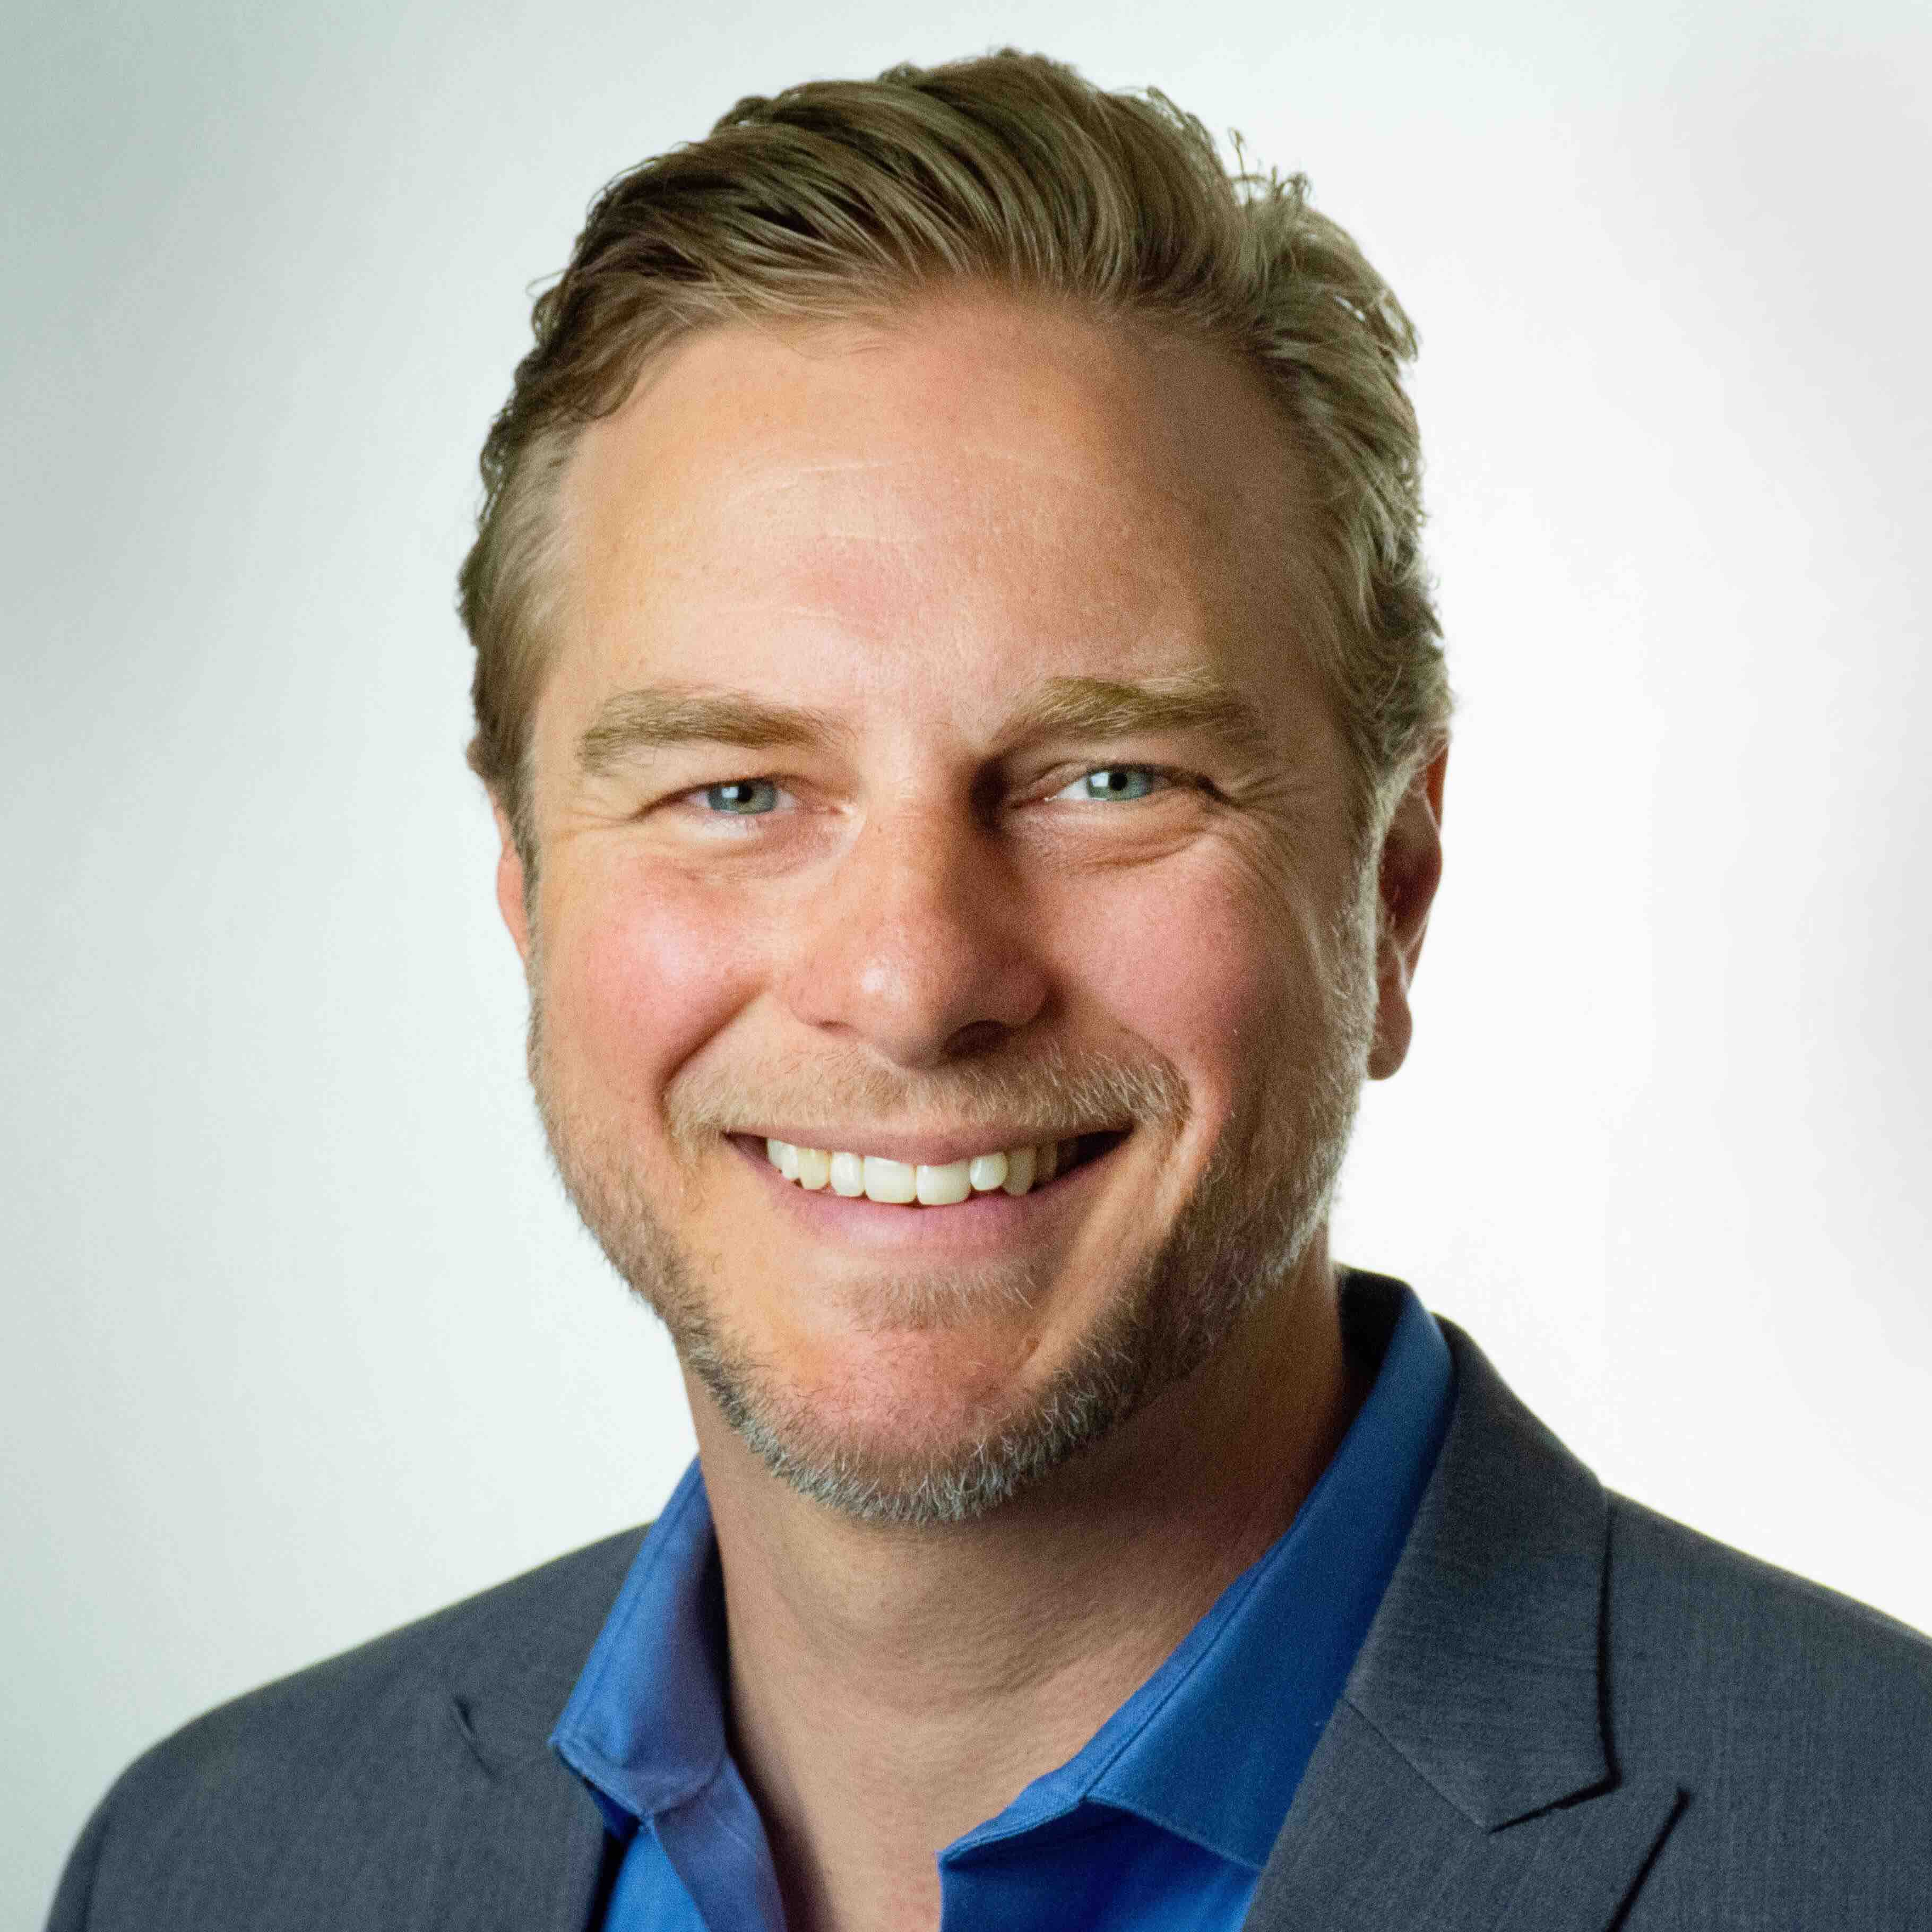 Smart Plants: A Q&A with Jonathan Vaught, CEO and Co-Founder of Front Range Biosciences